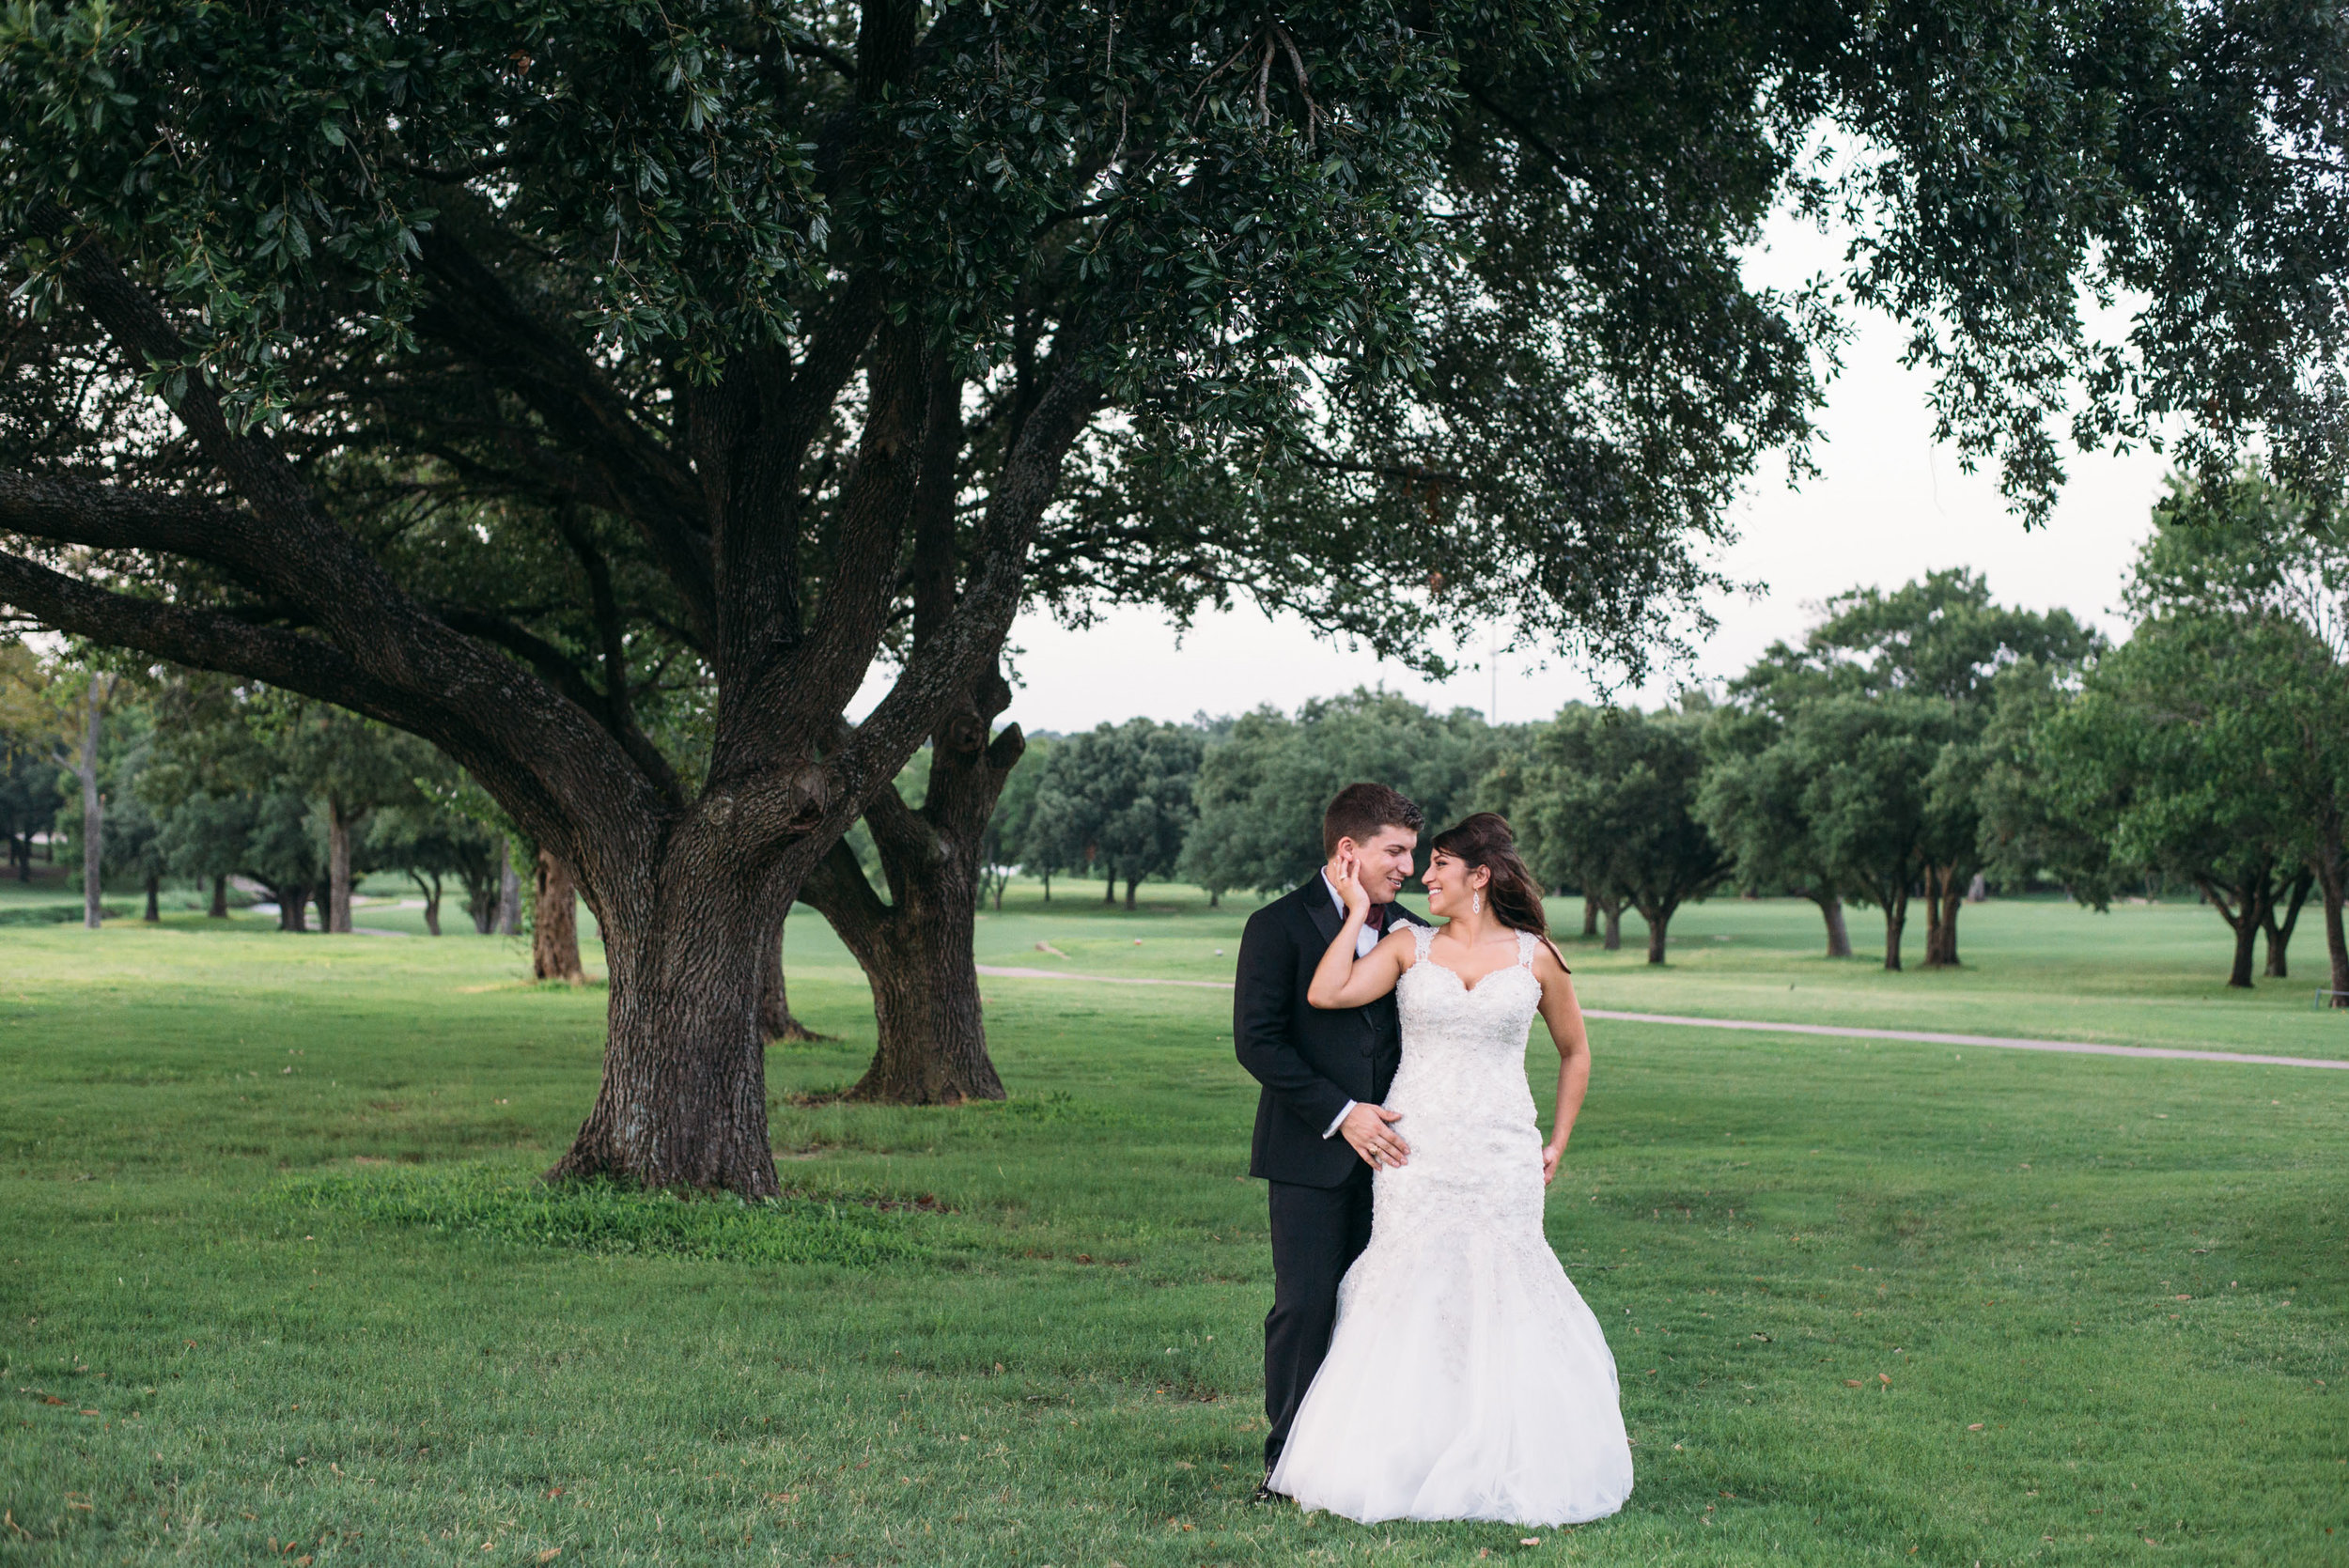 PhillipsEventCenter-AggieWedding-CollegeStationPhotographer_47.jpg